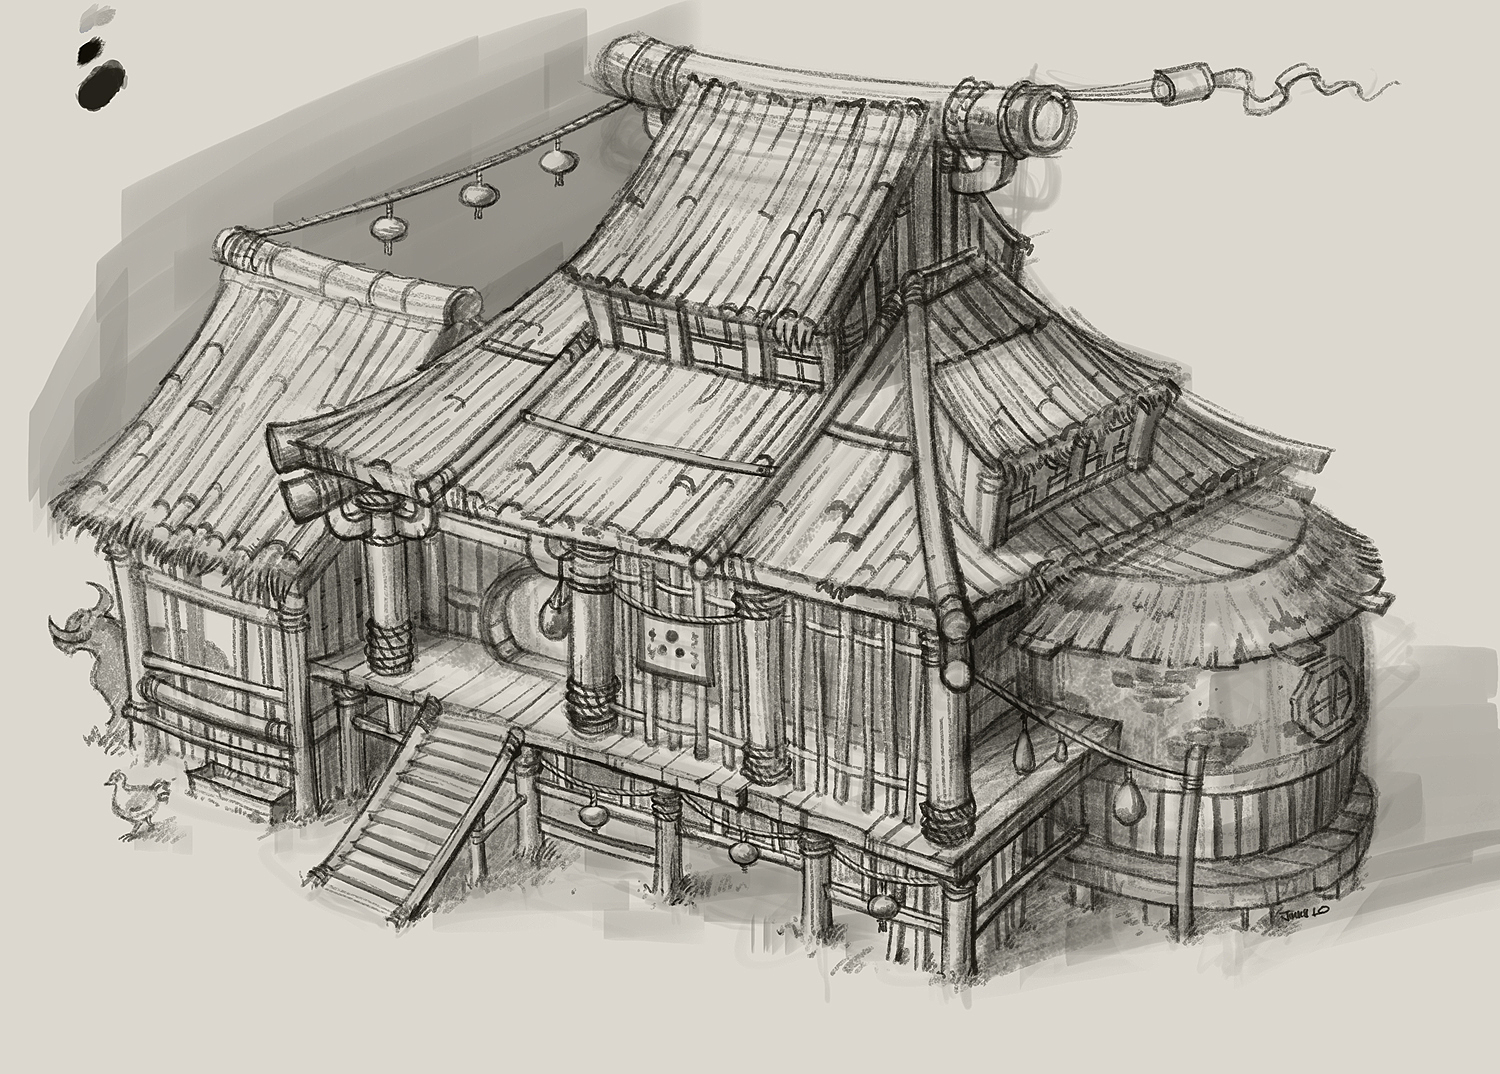 World of warcraft mists of pandaria for Concept house